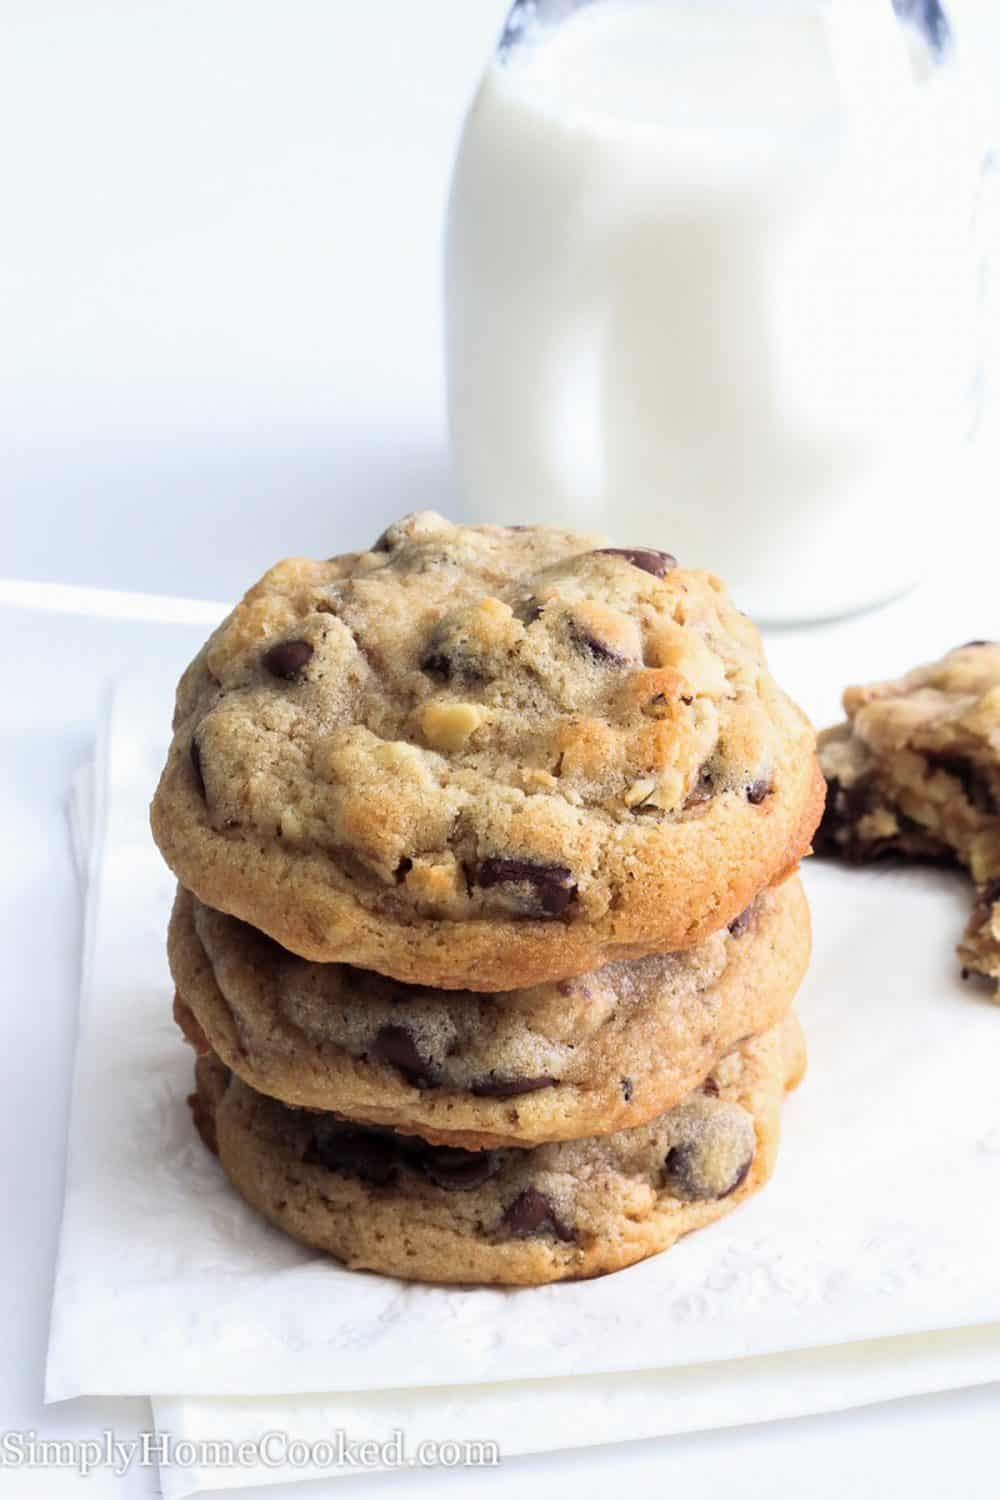 Stack of chocolate chip walnut cookies on a white napkin that is laying on a white surface with a glass jar of milk sitting in the background